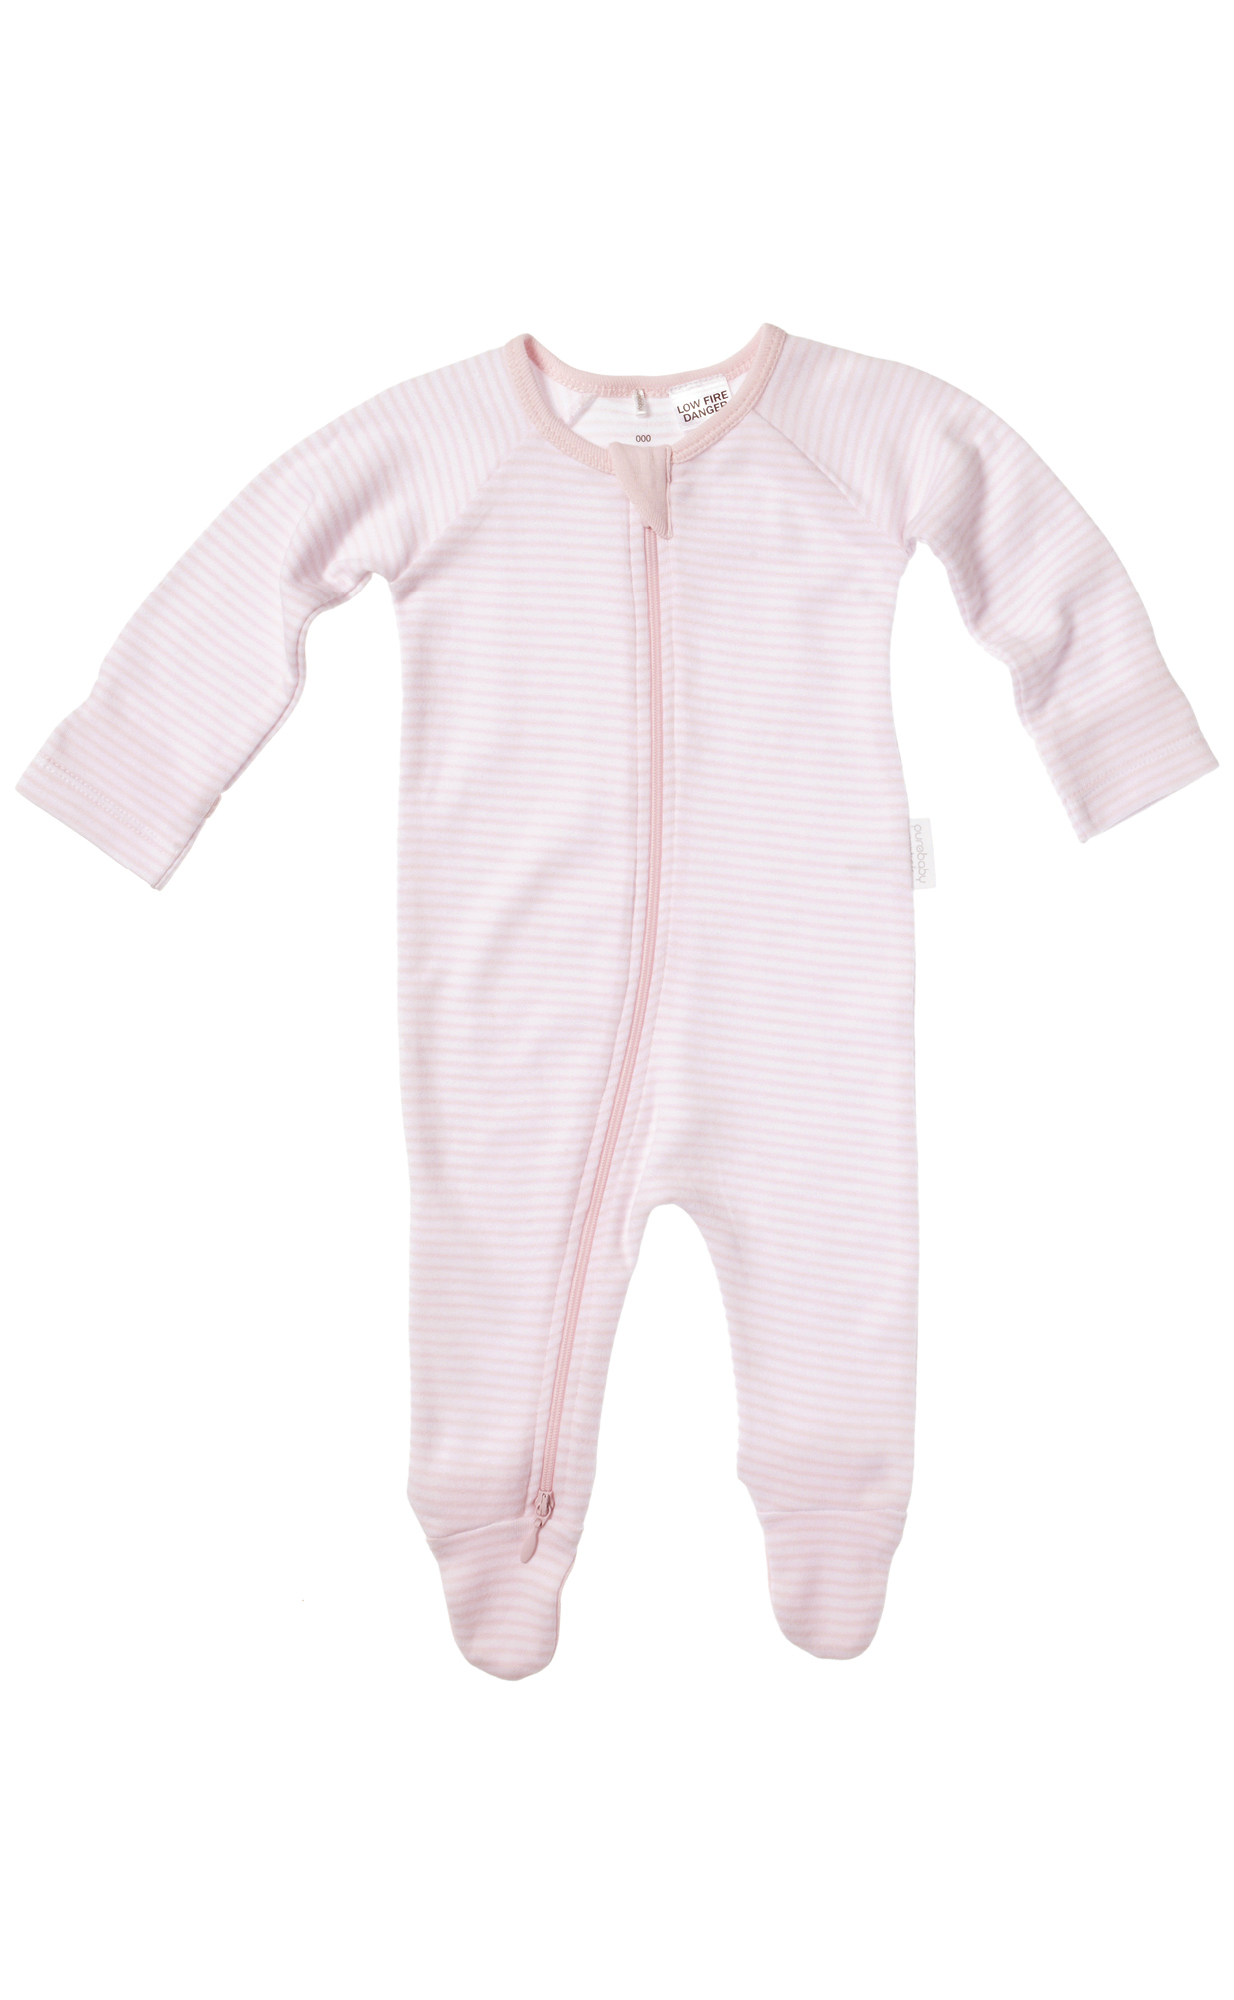 a0076de73 Printed Zip Growsuit - Pink Stripe - Millie Moo